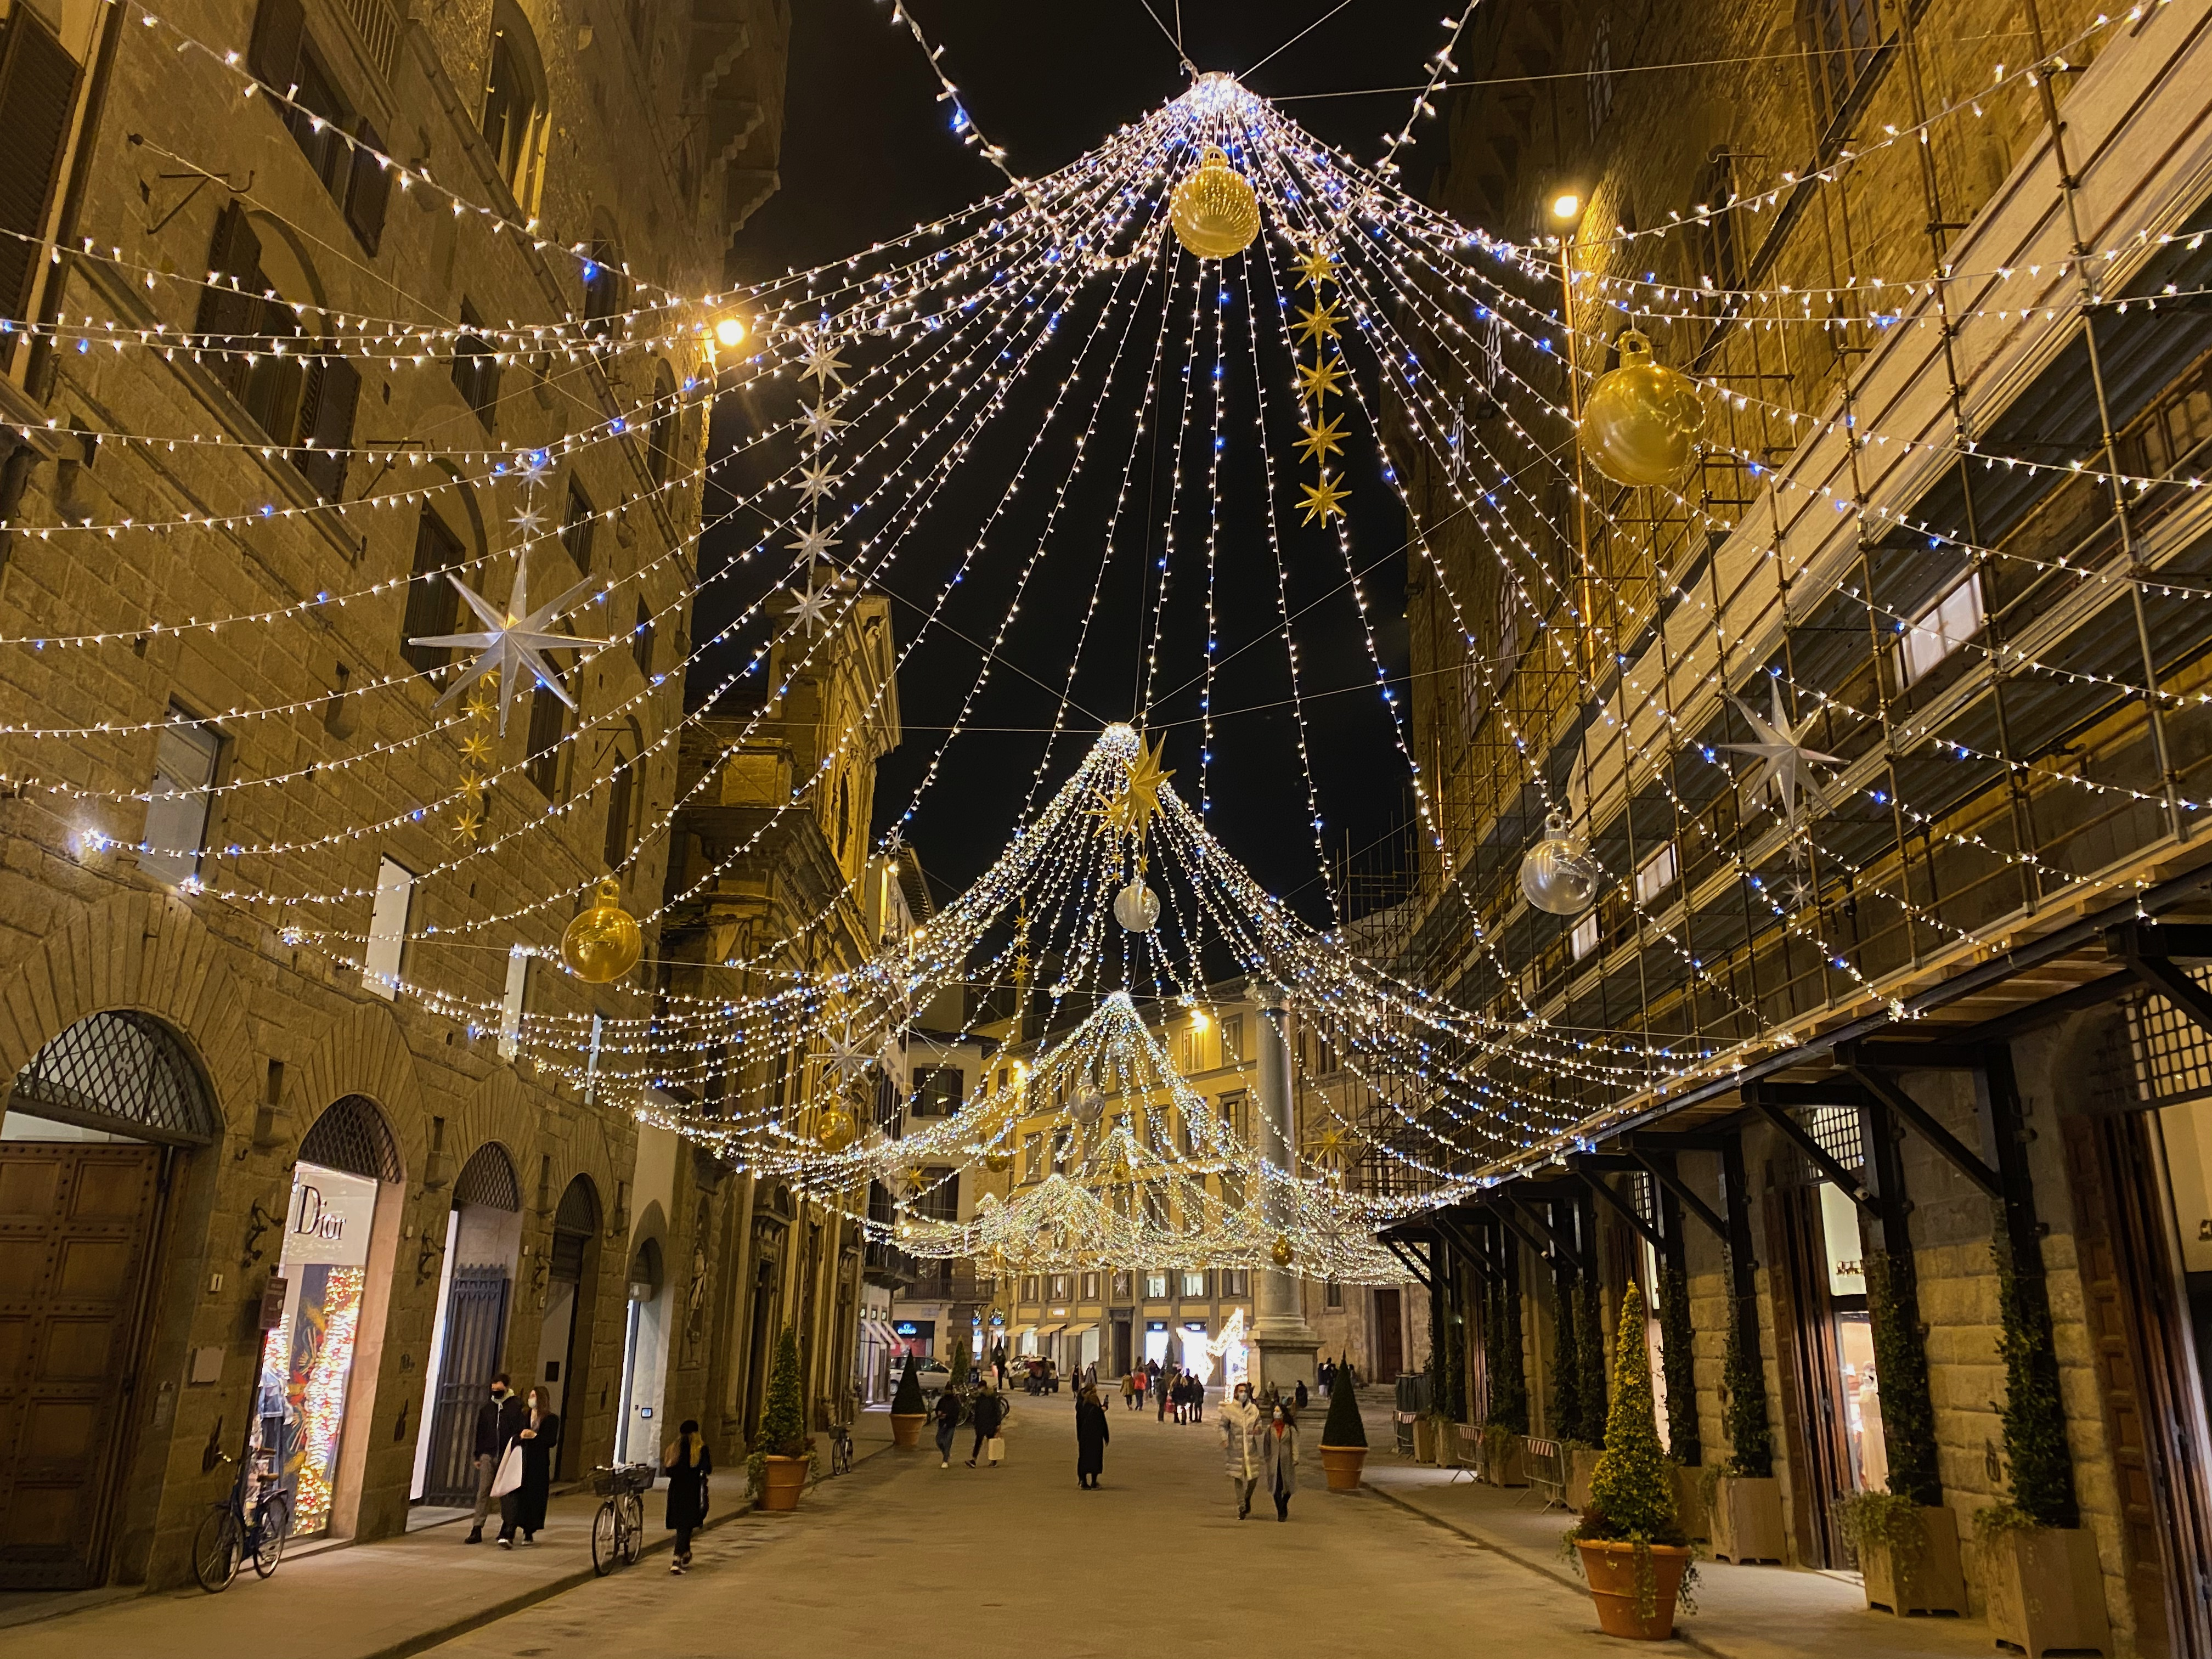 Via Tornabuoni with Christmas decorations